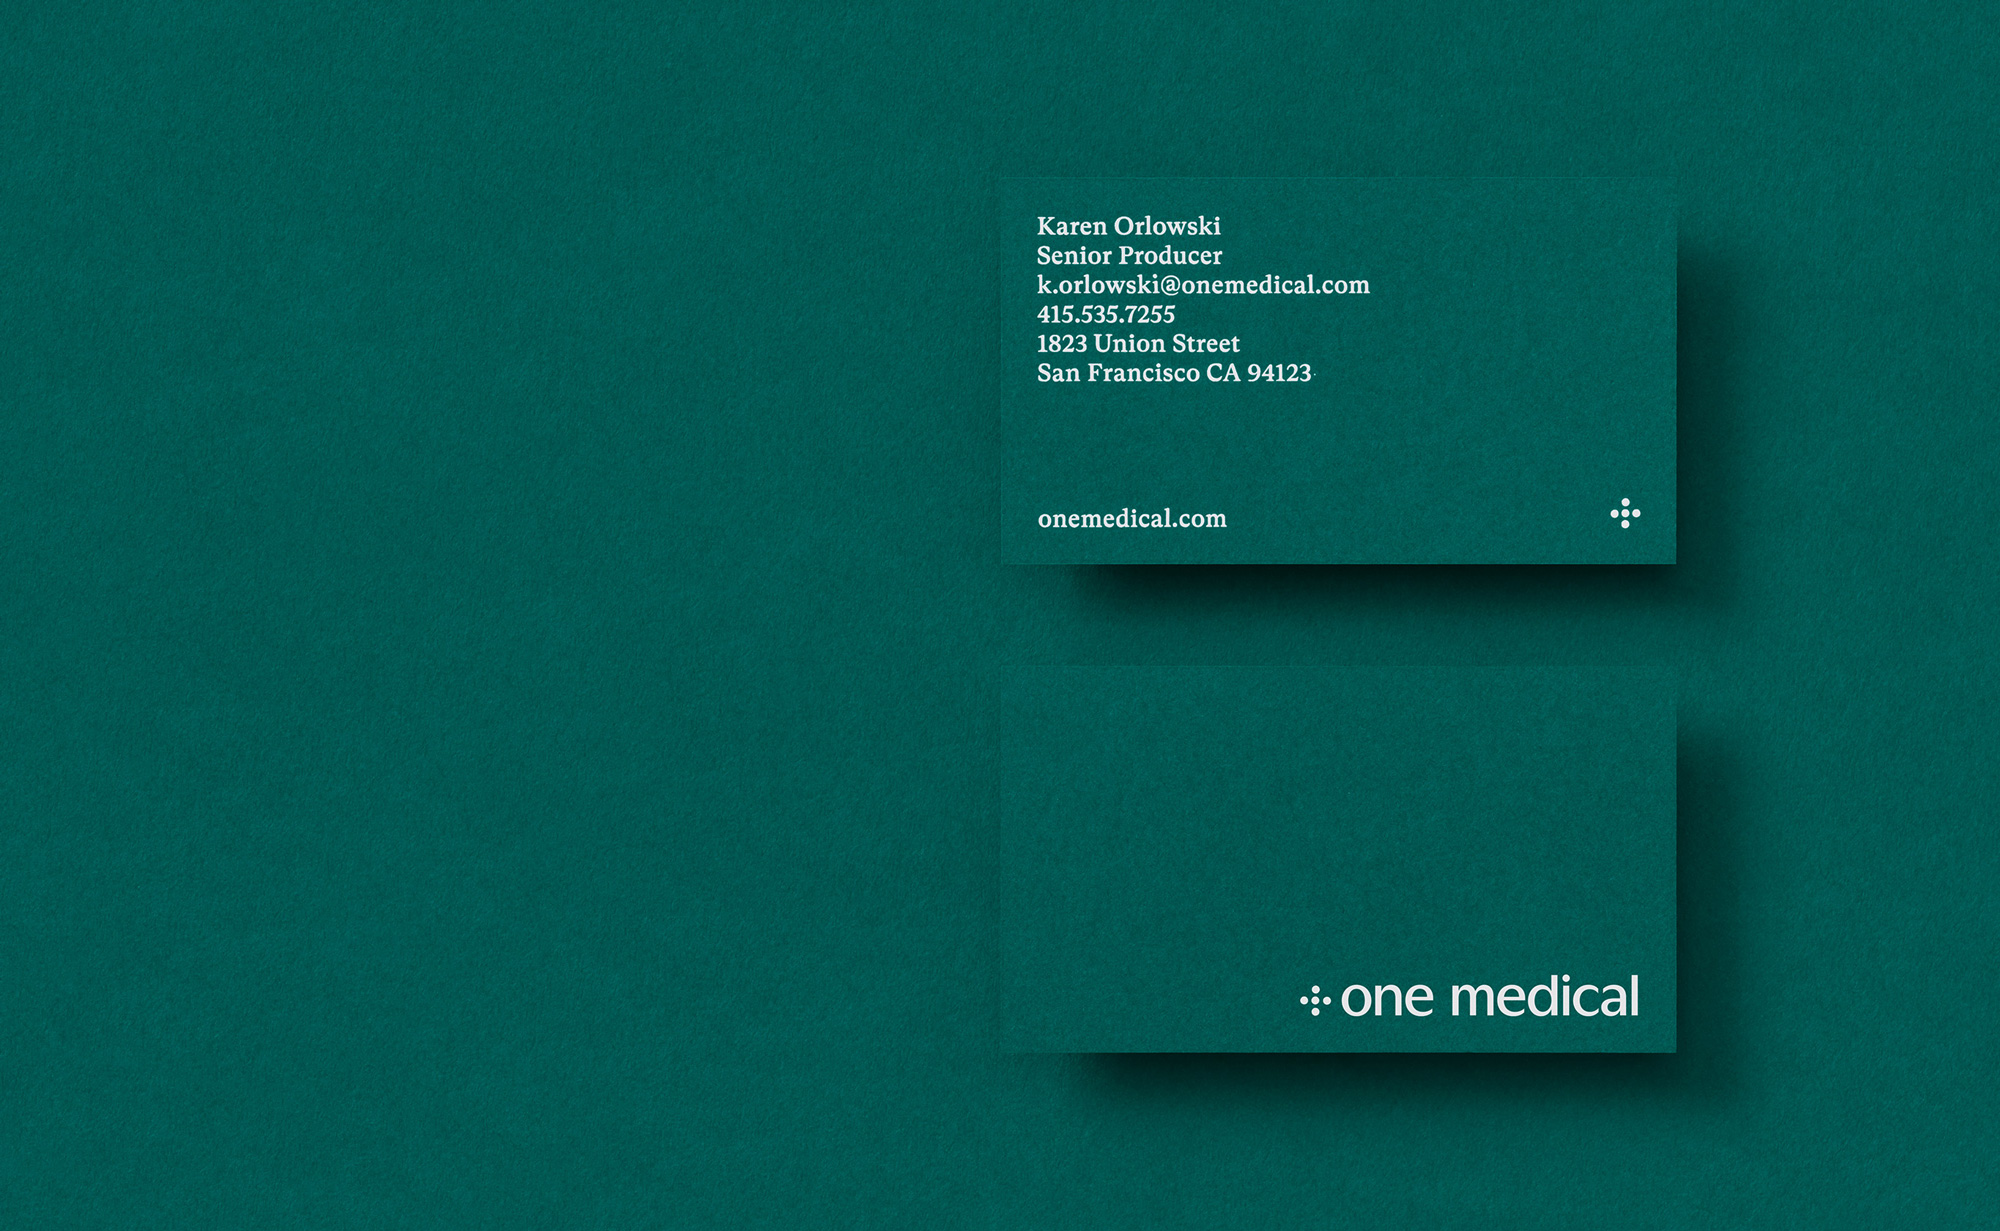 New Logo and Identity for One Medical by Moniker and In-house